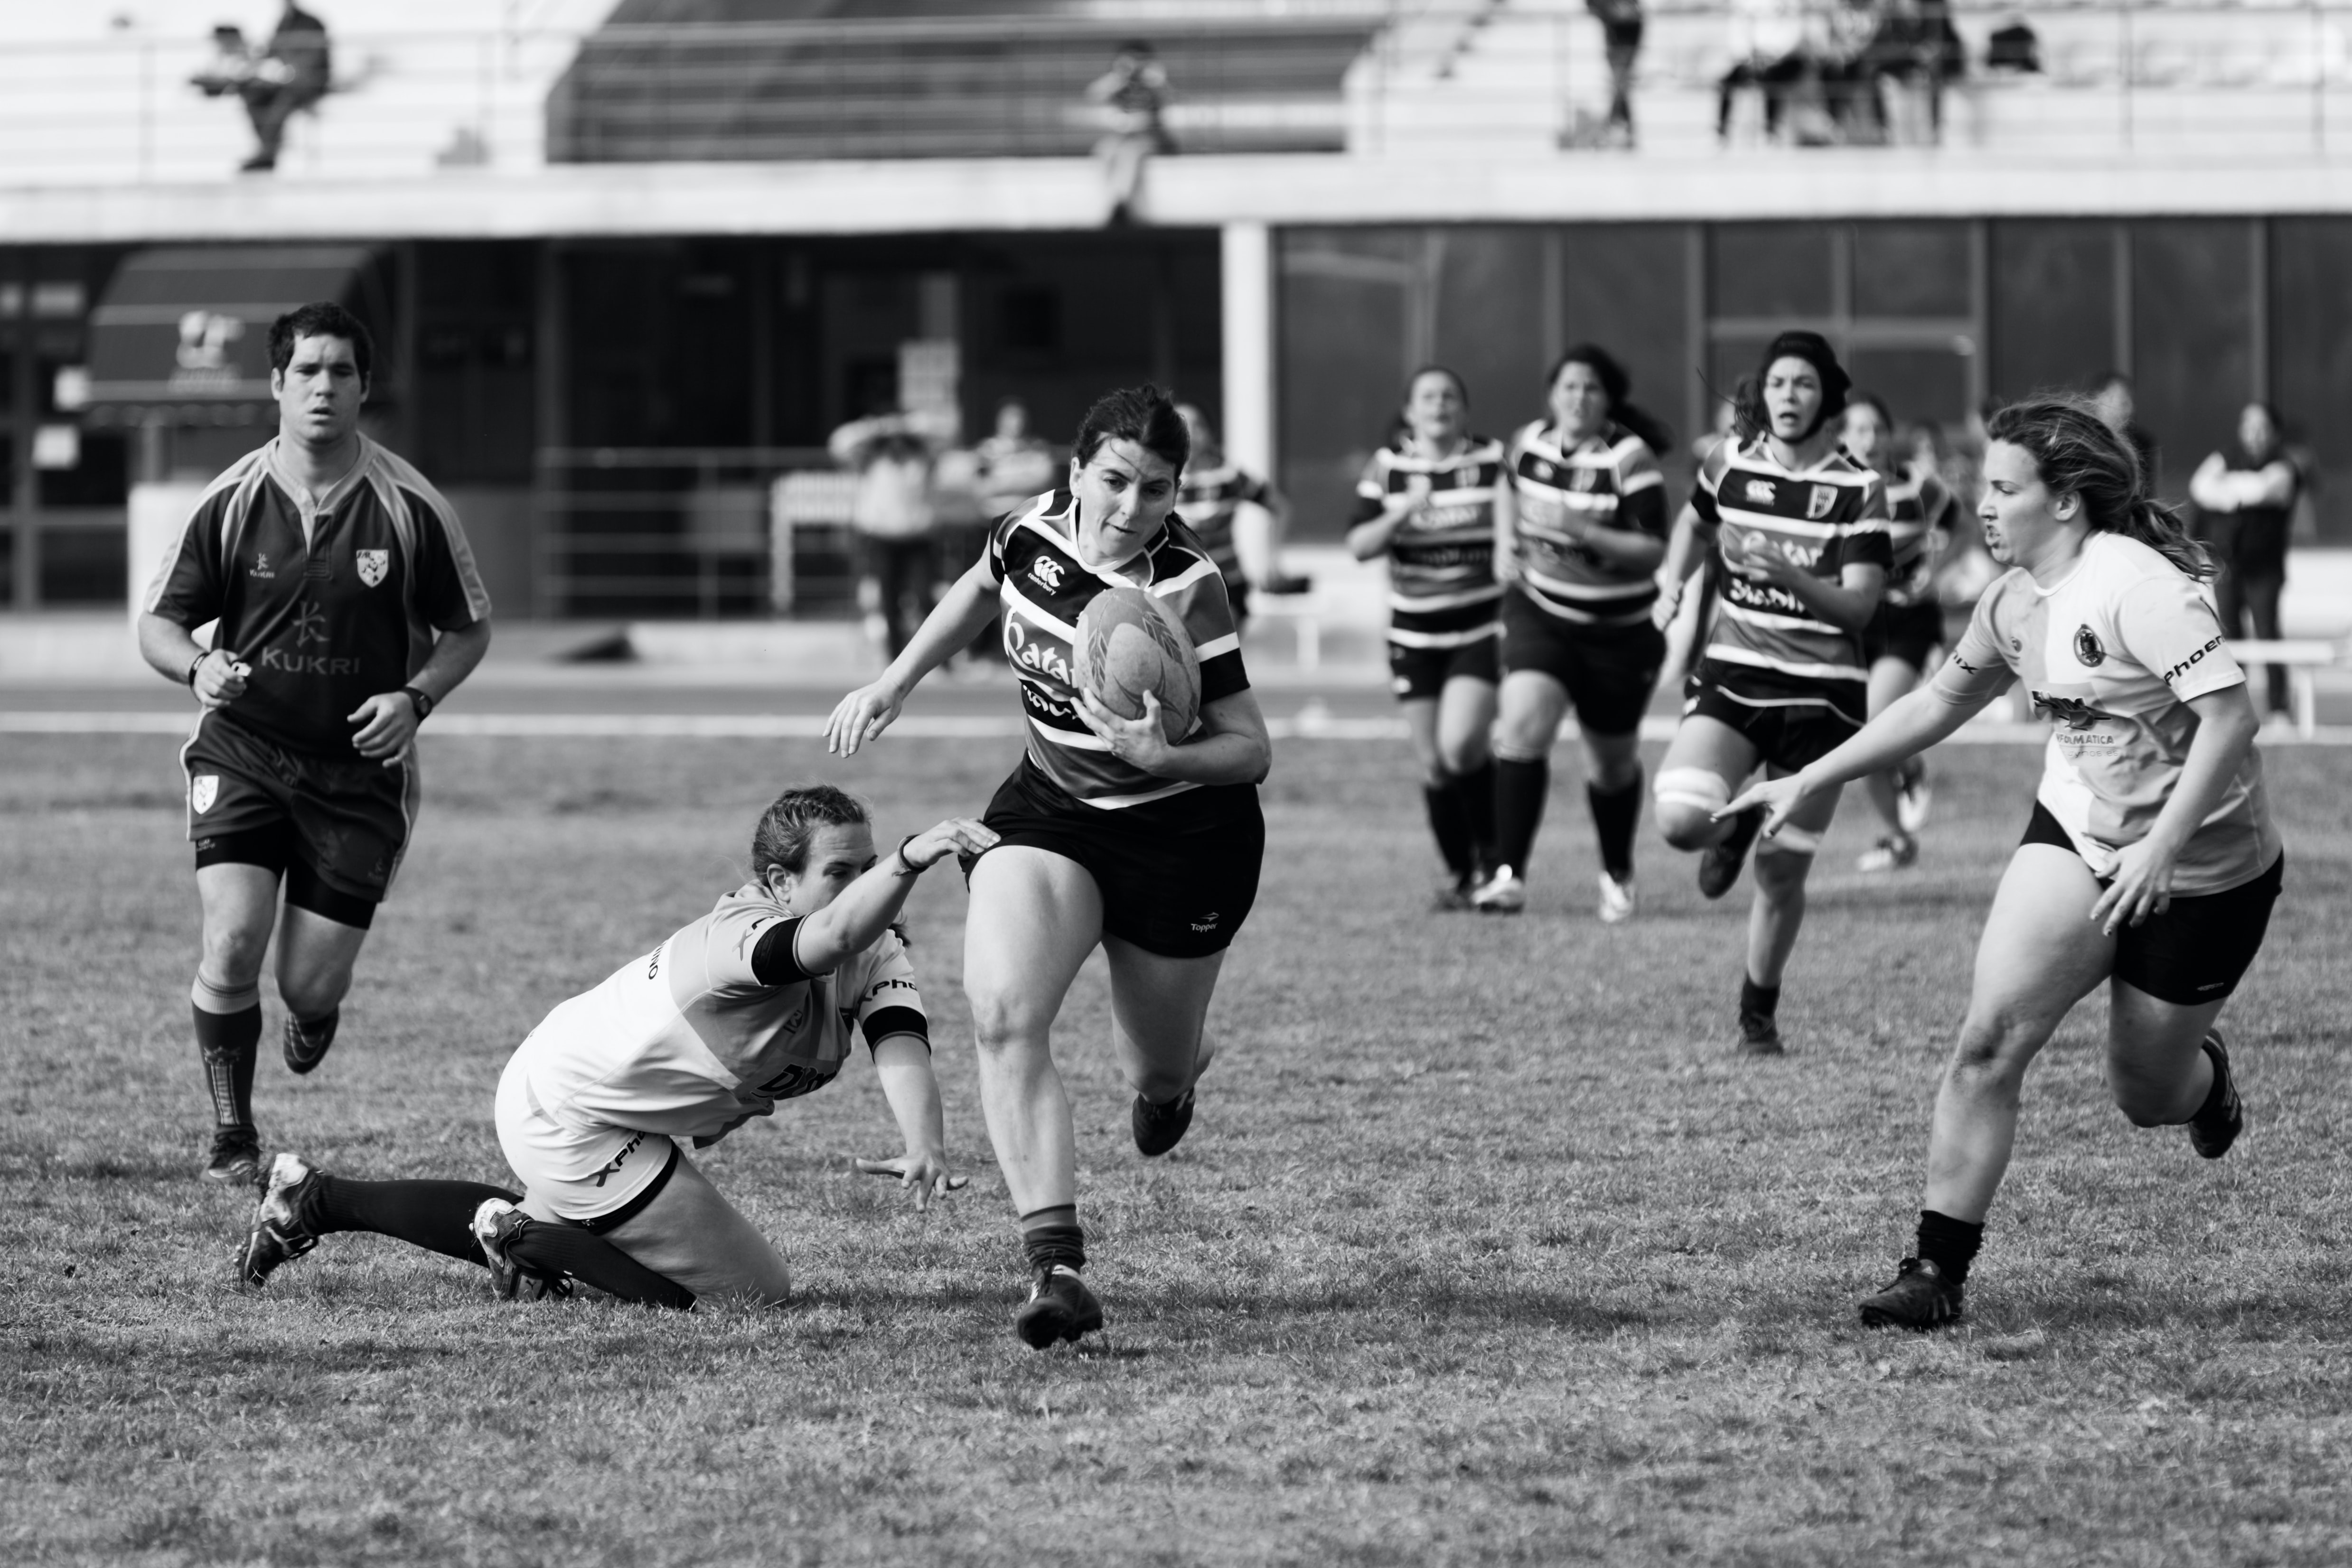 grayscale photo of women playing rugby football